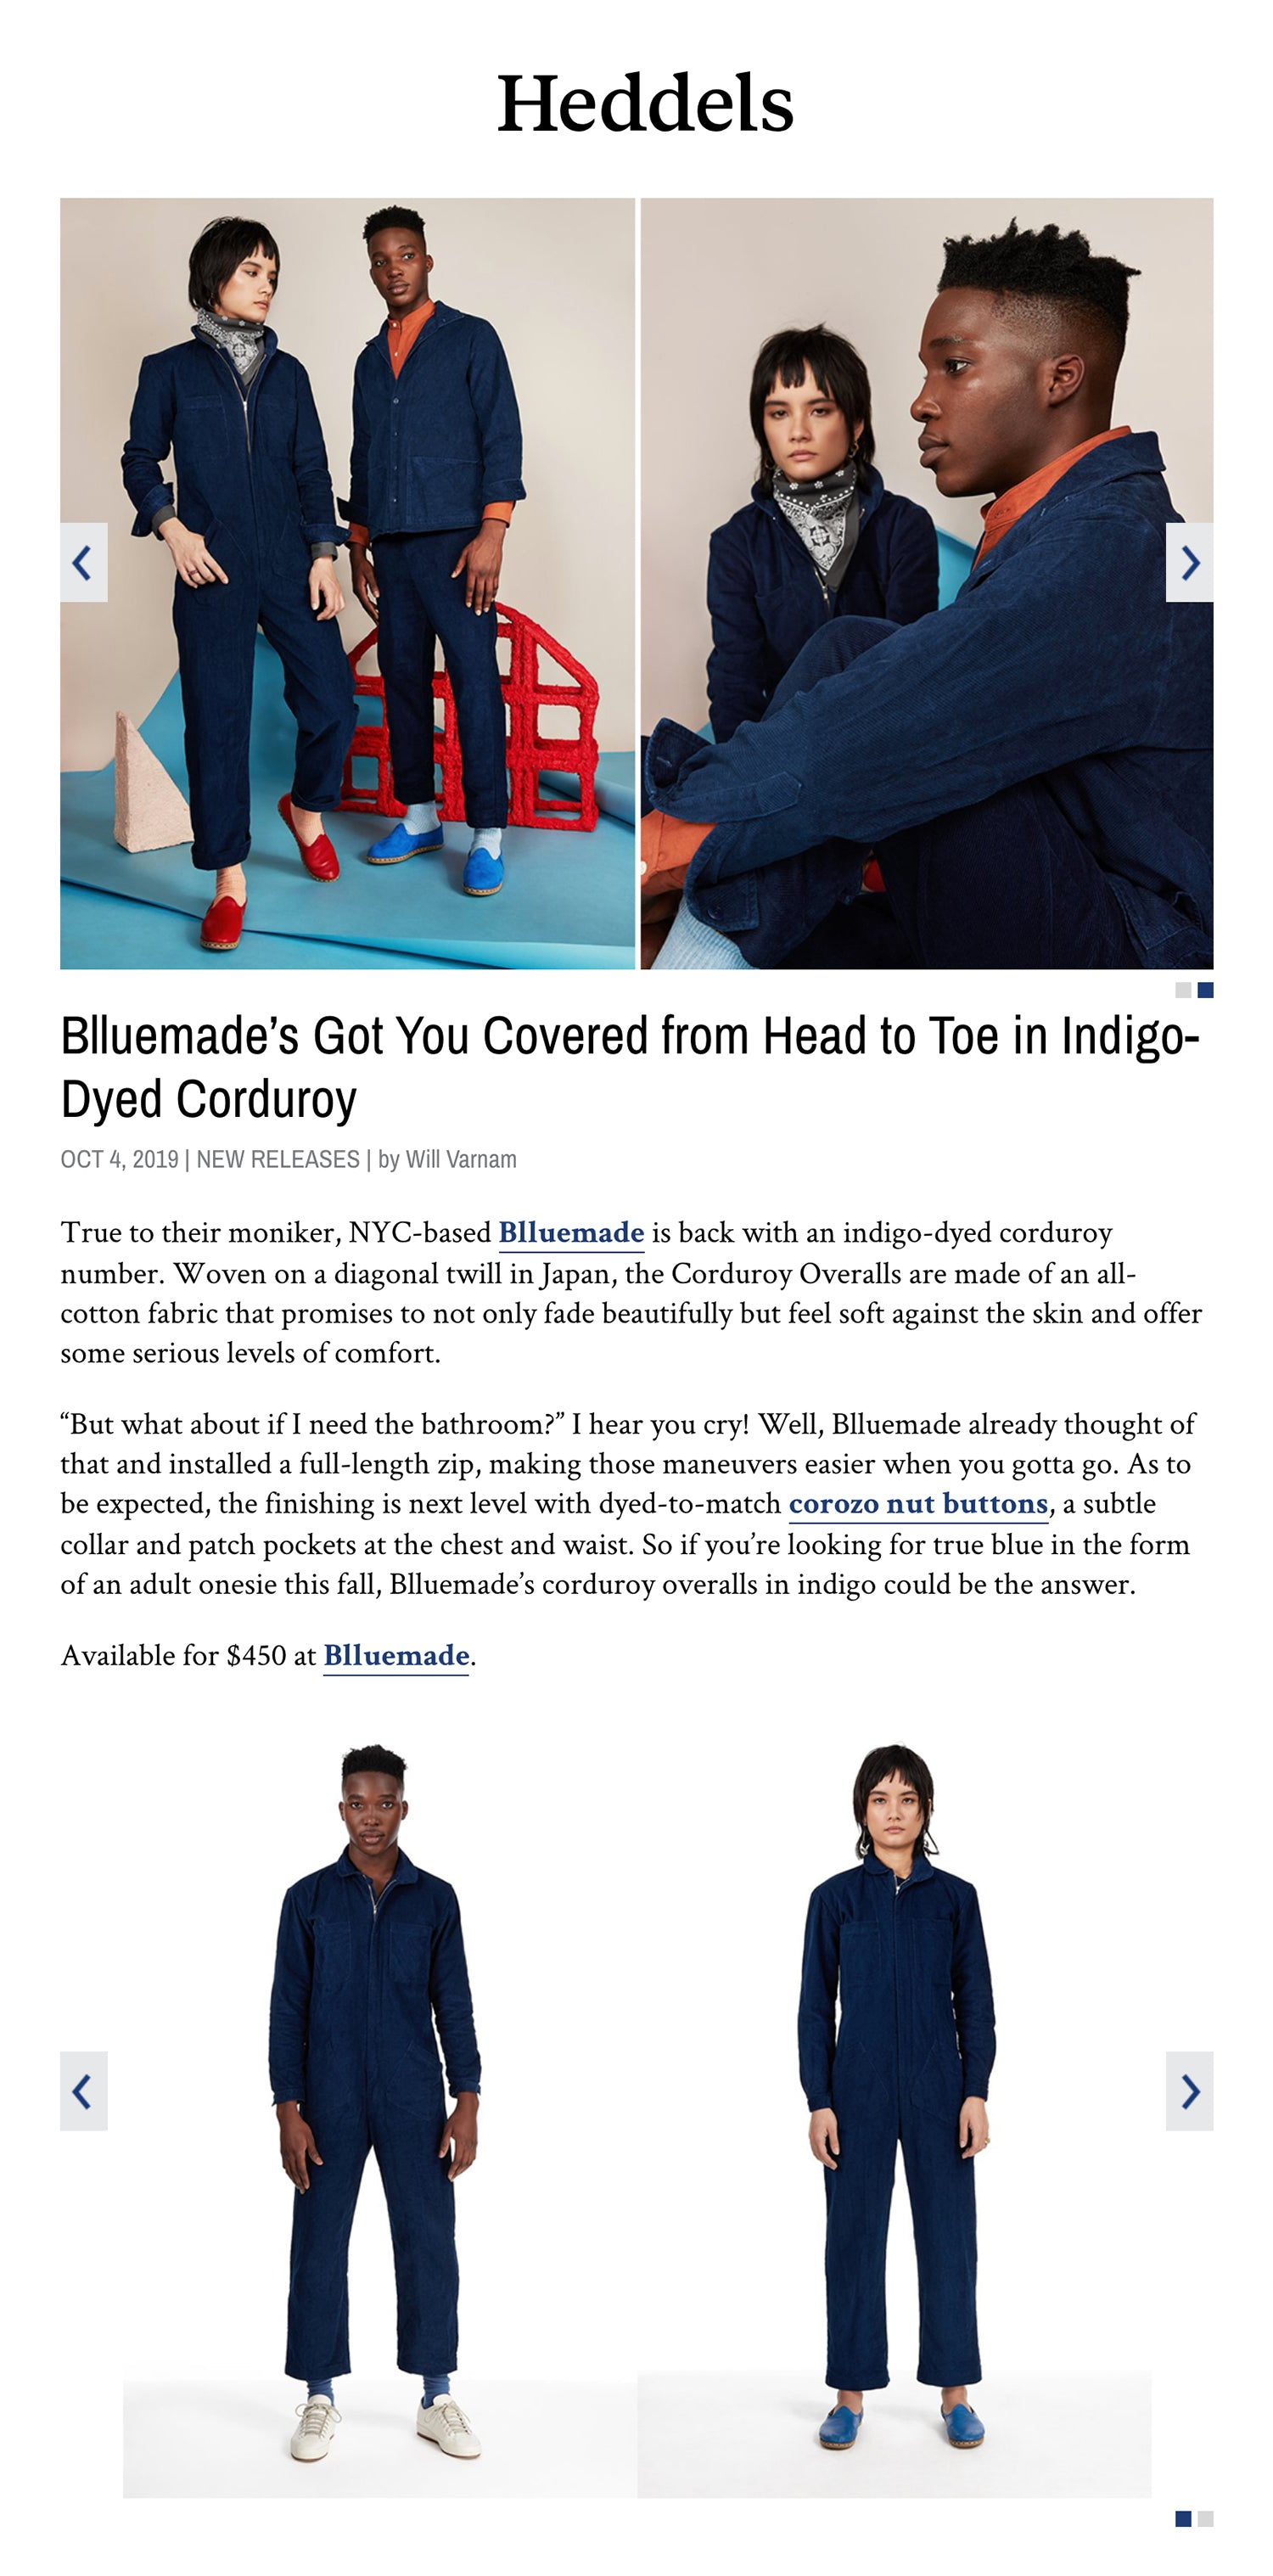 Blluemade Press Heddels Blluemade's Got You Covered from Head to Toe in Indigo-Dyed Corduroy